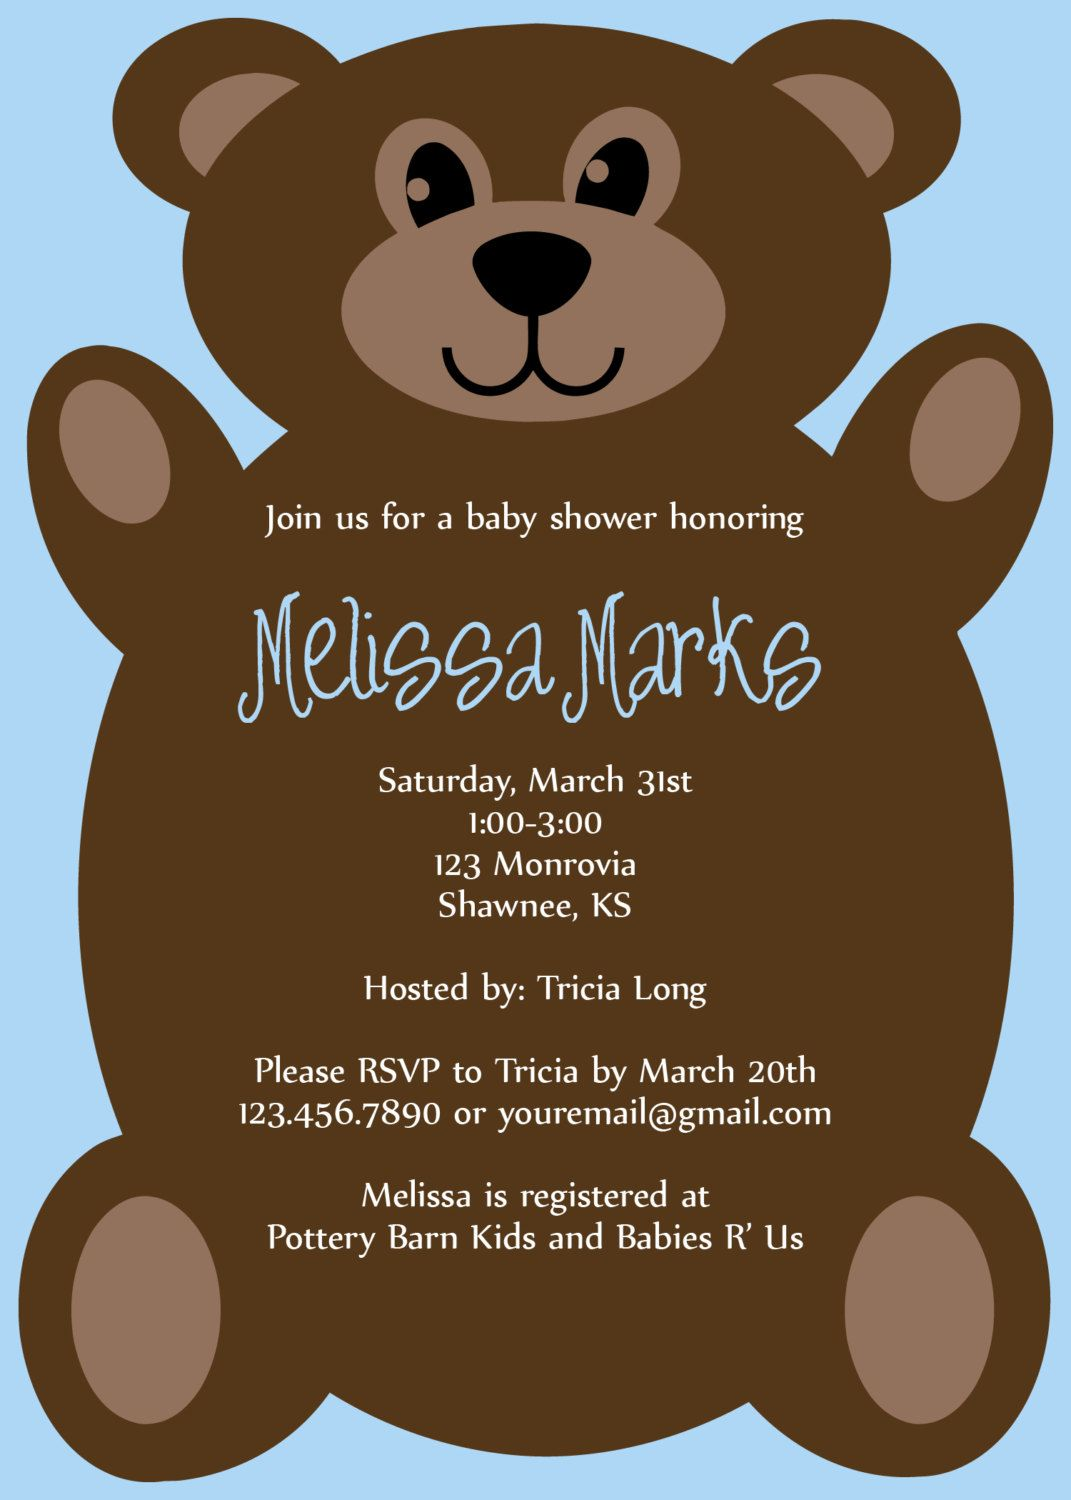 Download now free baby shower invitations maker free baby shower download now free baby shower invitations maker filmwisefo